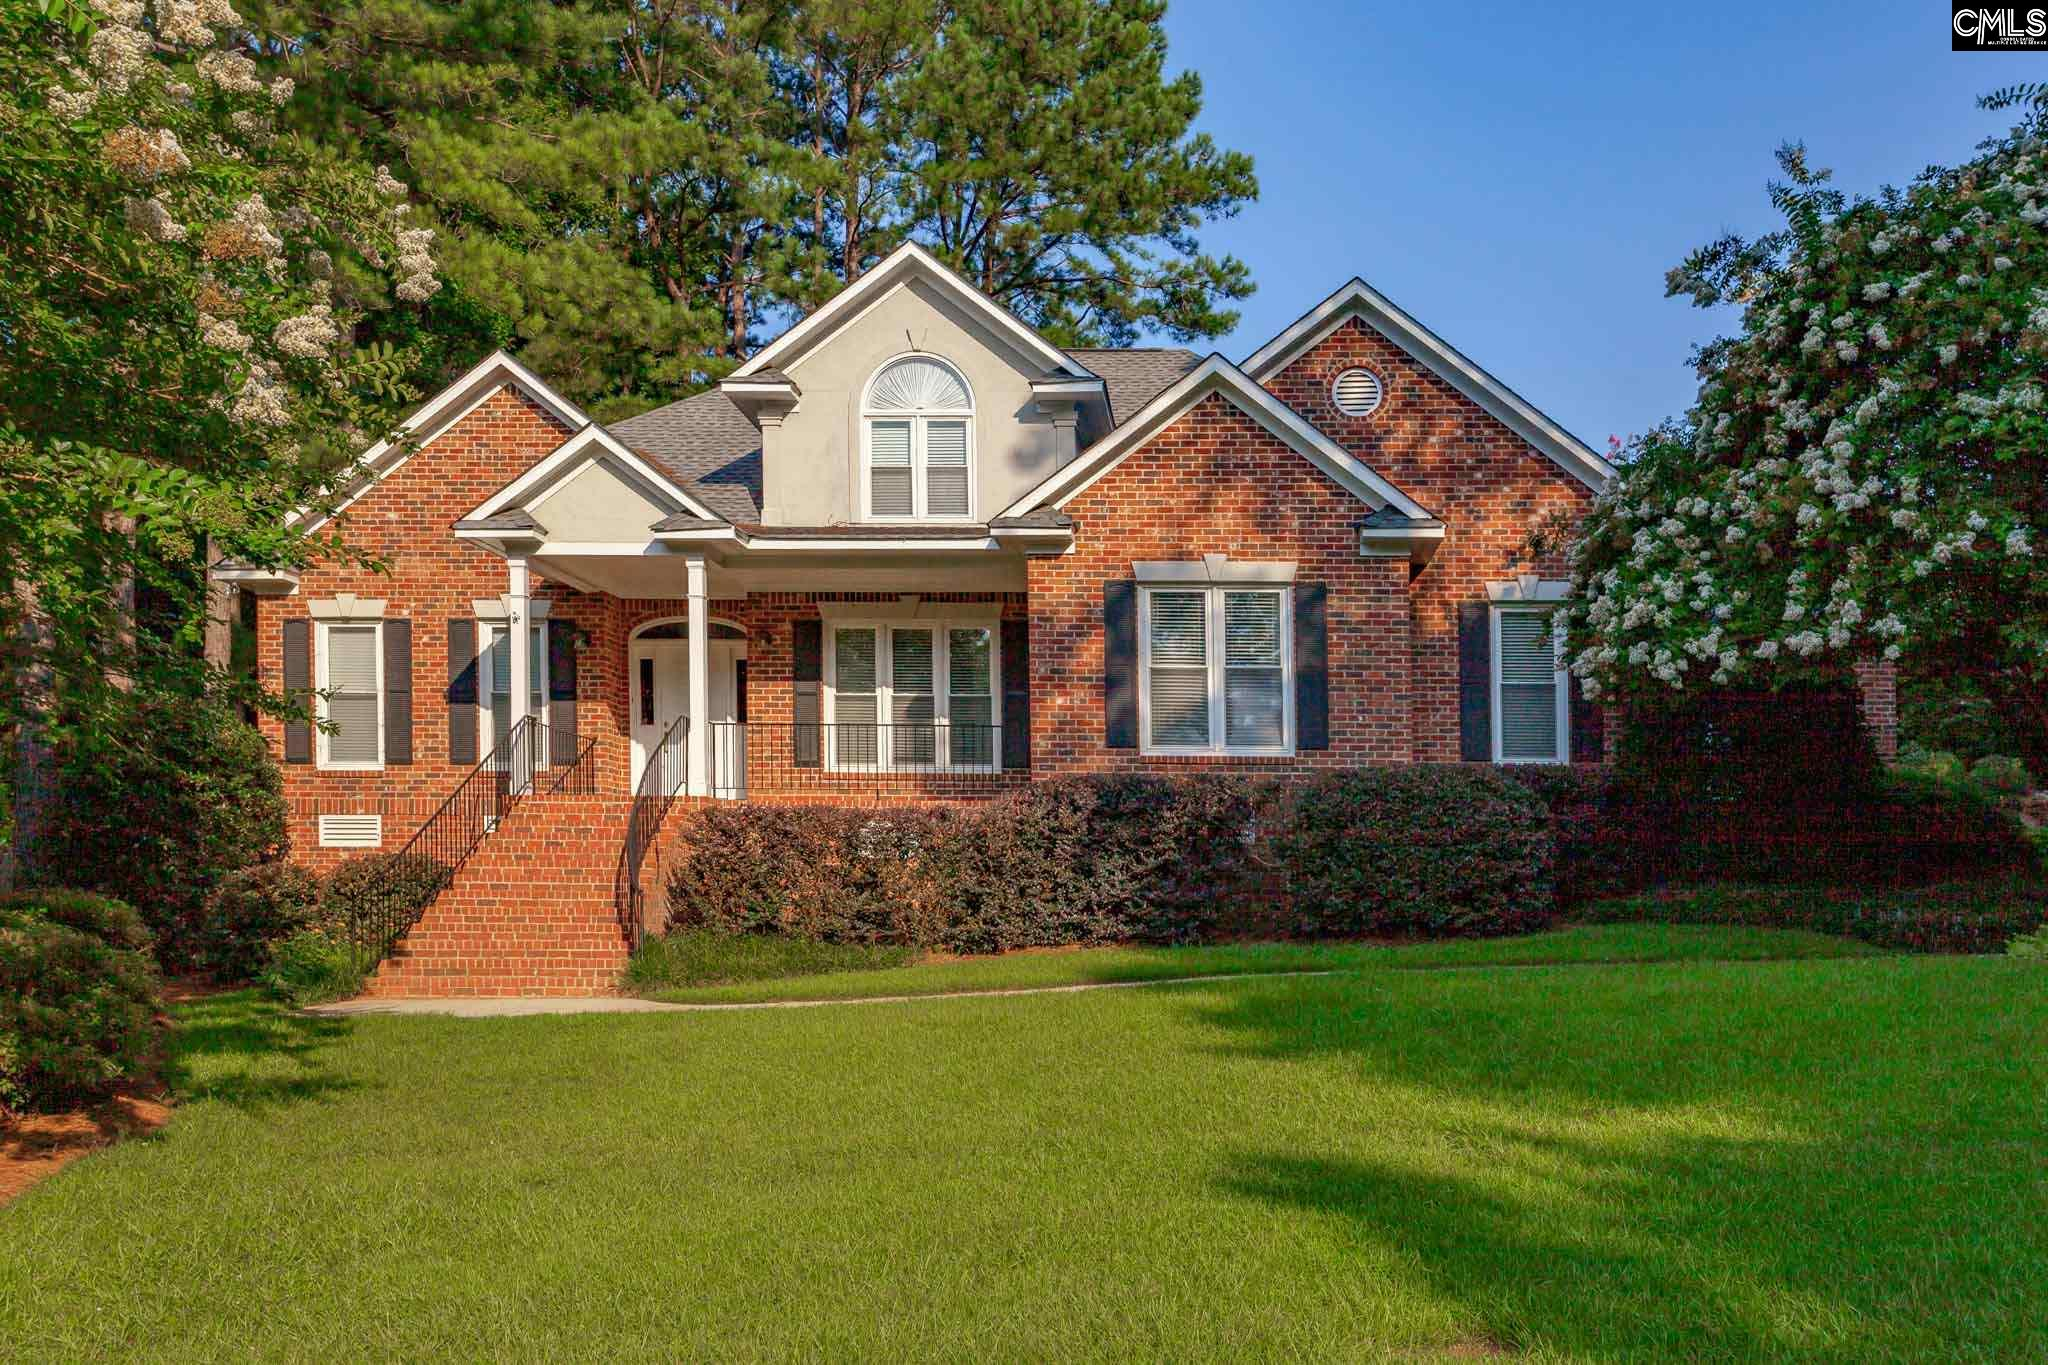 124 Birch Terrace Lexington, SC 29072